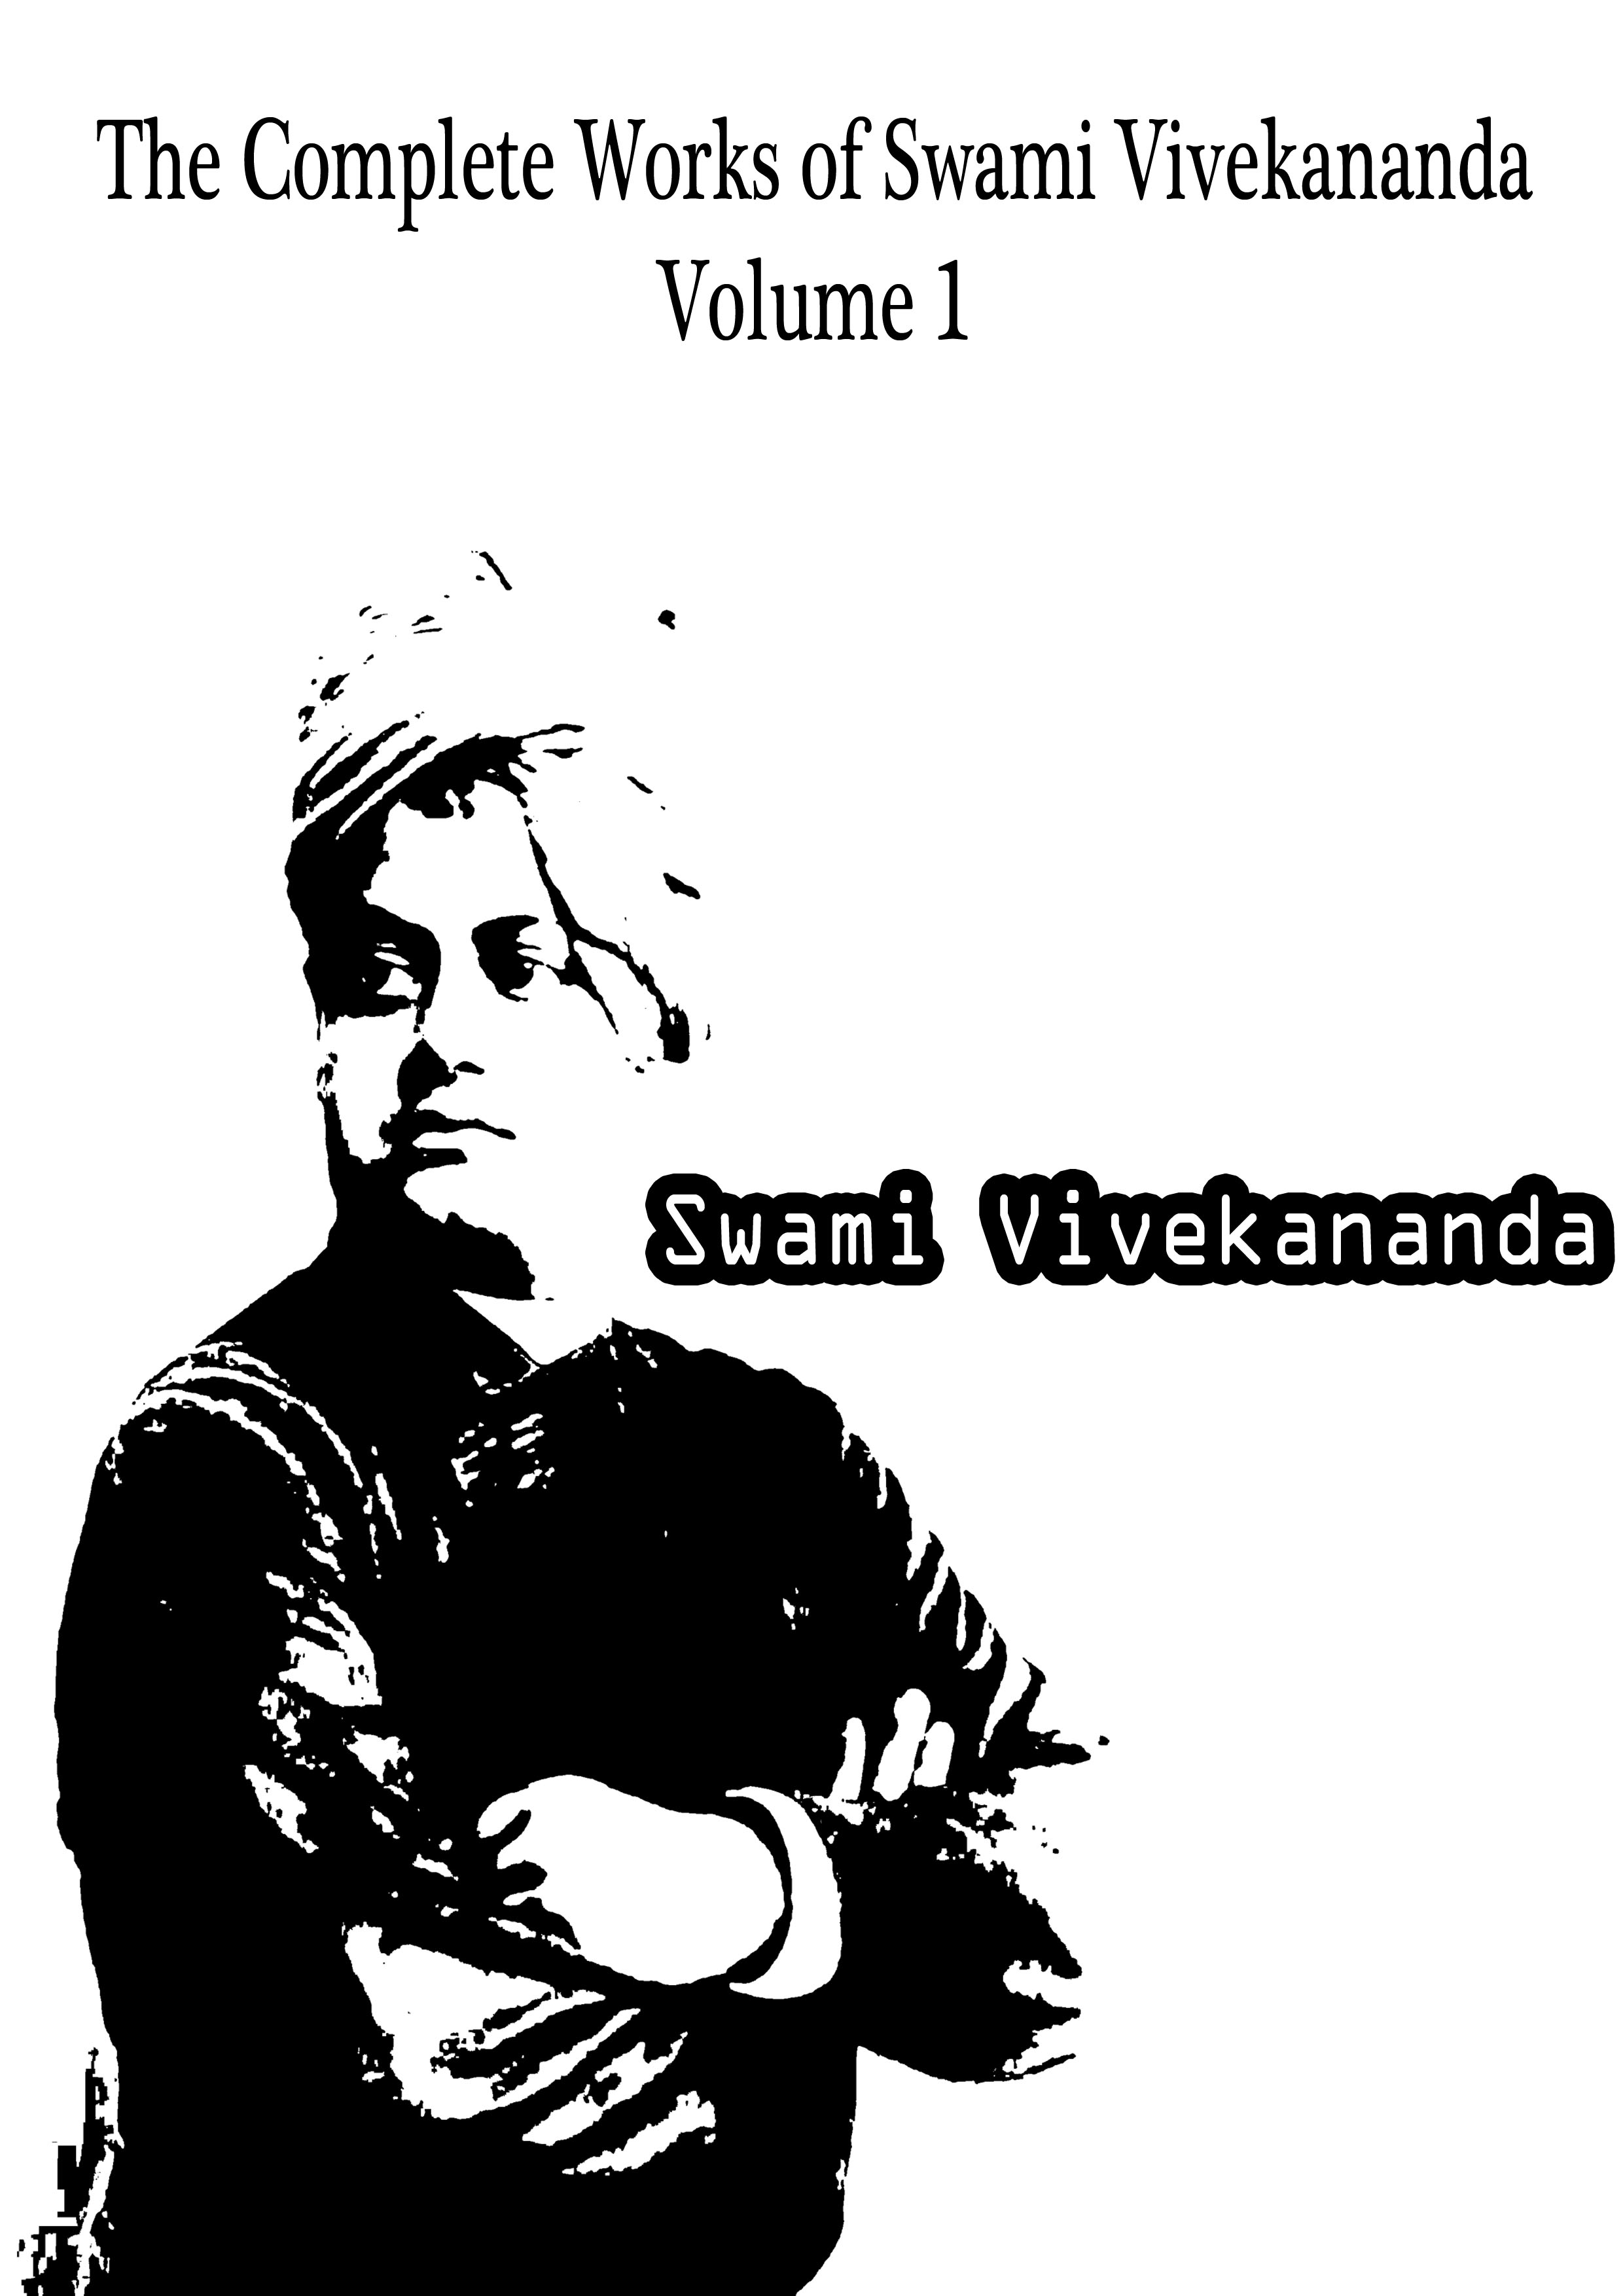 The Complete Works of Swami Vivekananda Volume 1